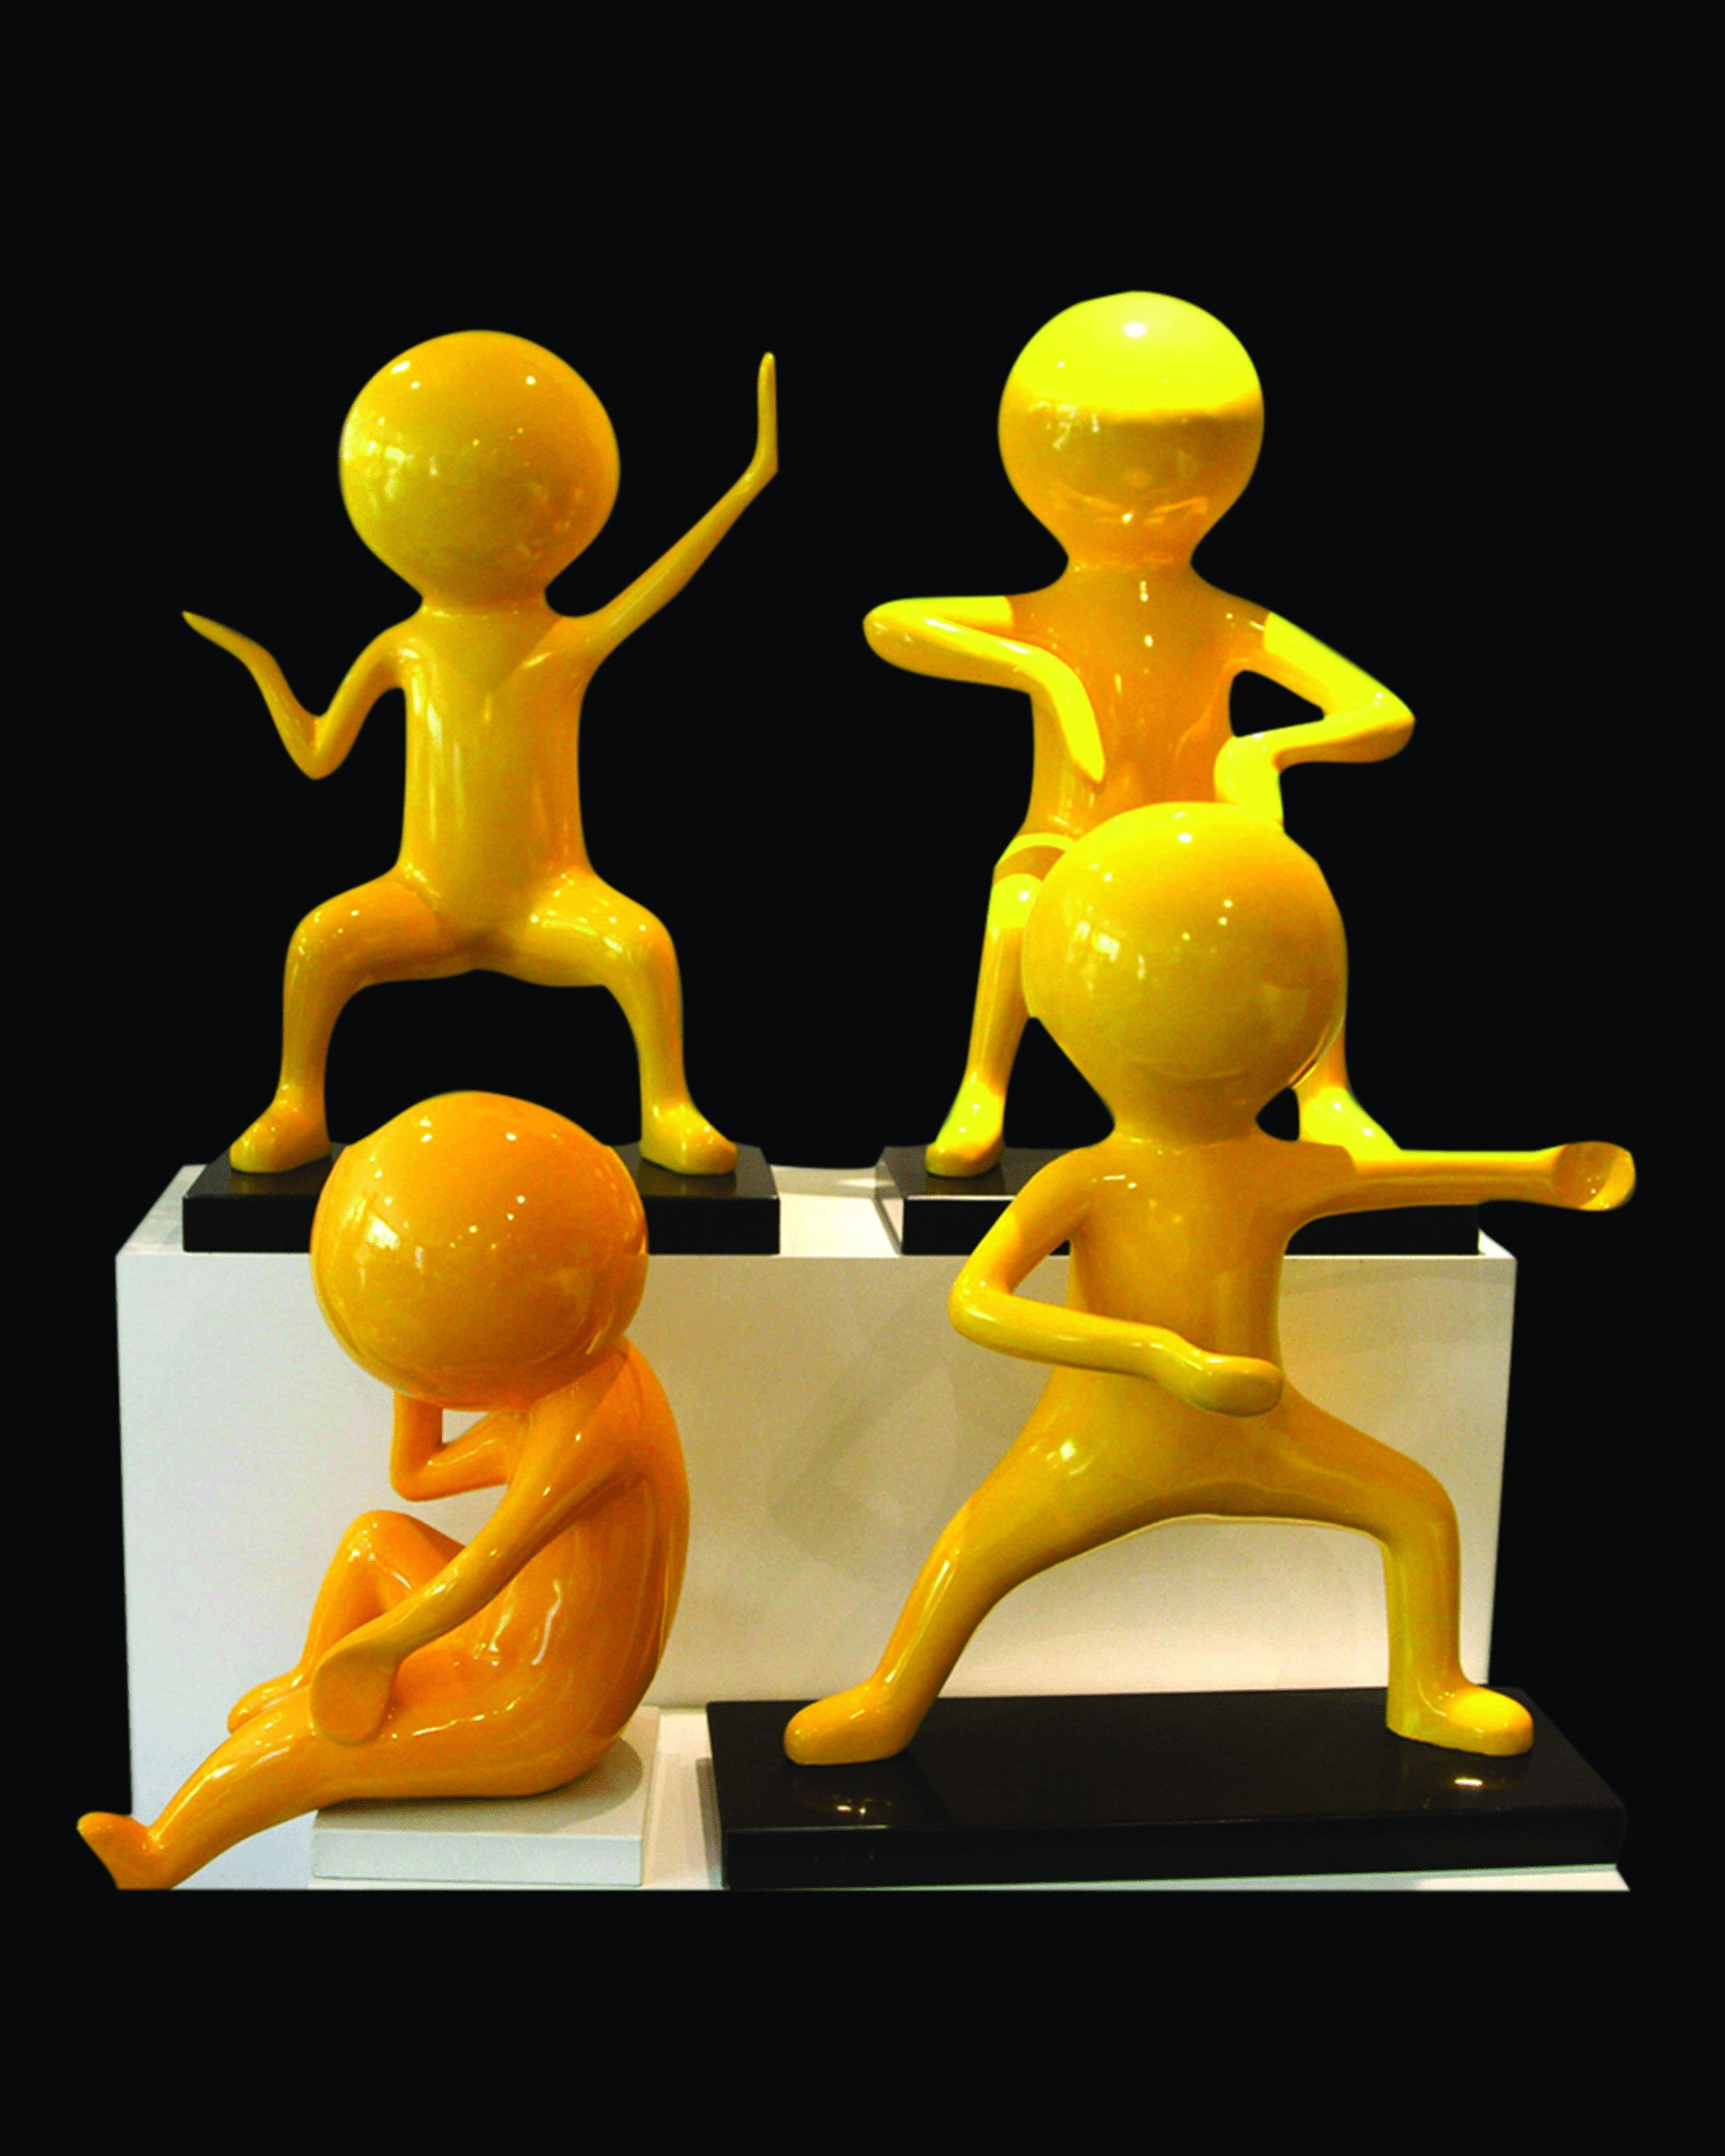 YOKO YELLOW SMALL BOY SCULPTURE  (SET OF 4) ANGIE HOMES